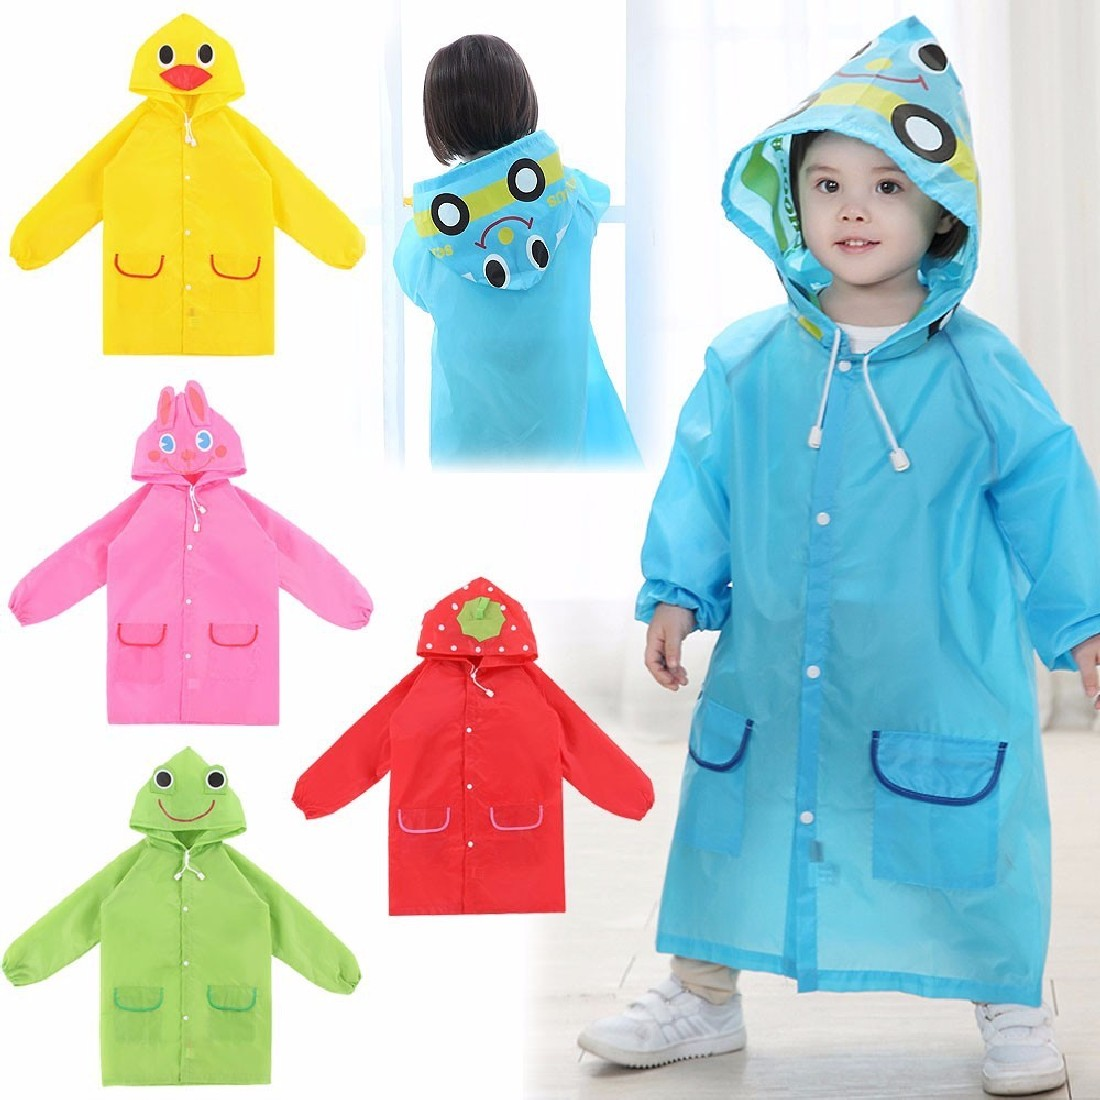 New Fashion Waterproof Kids Cotton Rain Coat For Children Raincoat Rainwear Rainsuit Kids boy girl Animal Style Raincoat(China (Mainland))